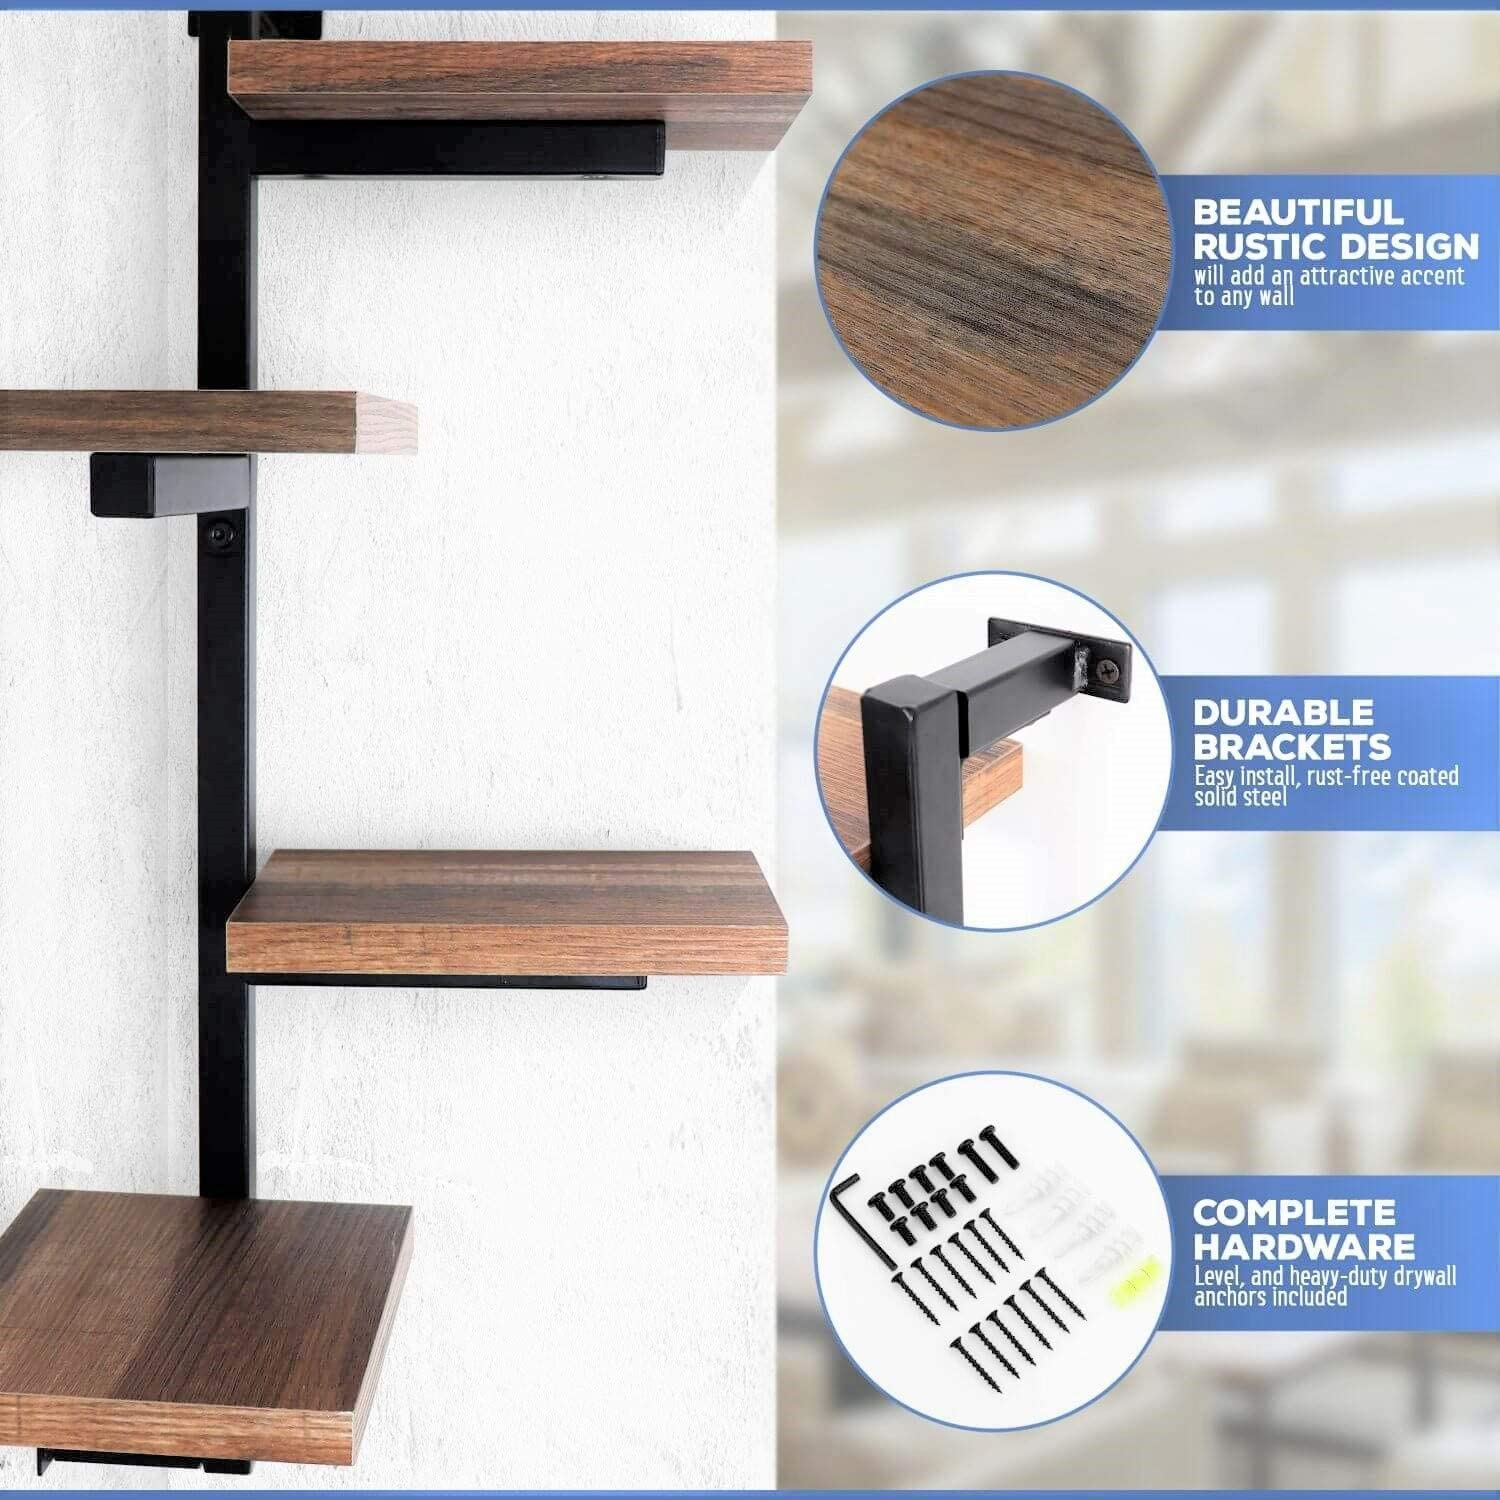 Under.Stated Wall Mounted Corner Shelf Brown Metal Bracket Floating Shelves Rustic MDF Display Shelf with Four Arms